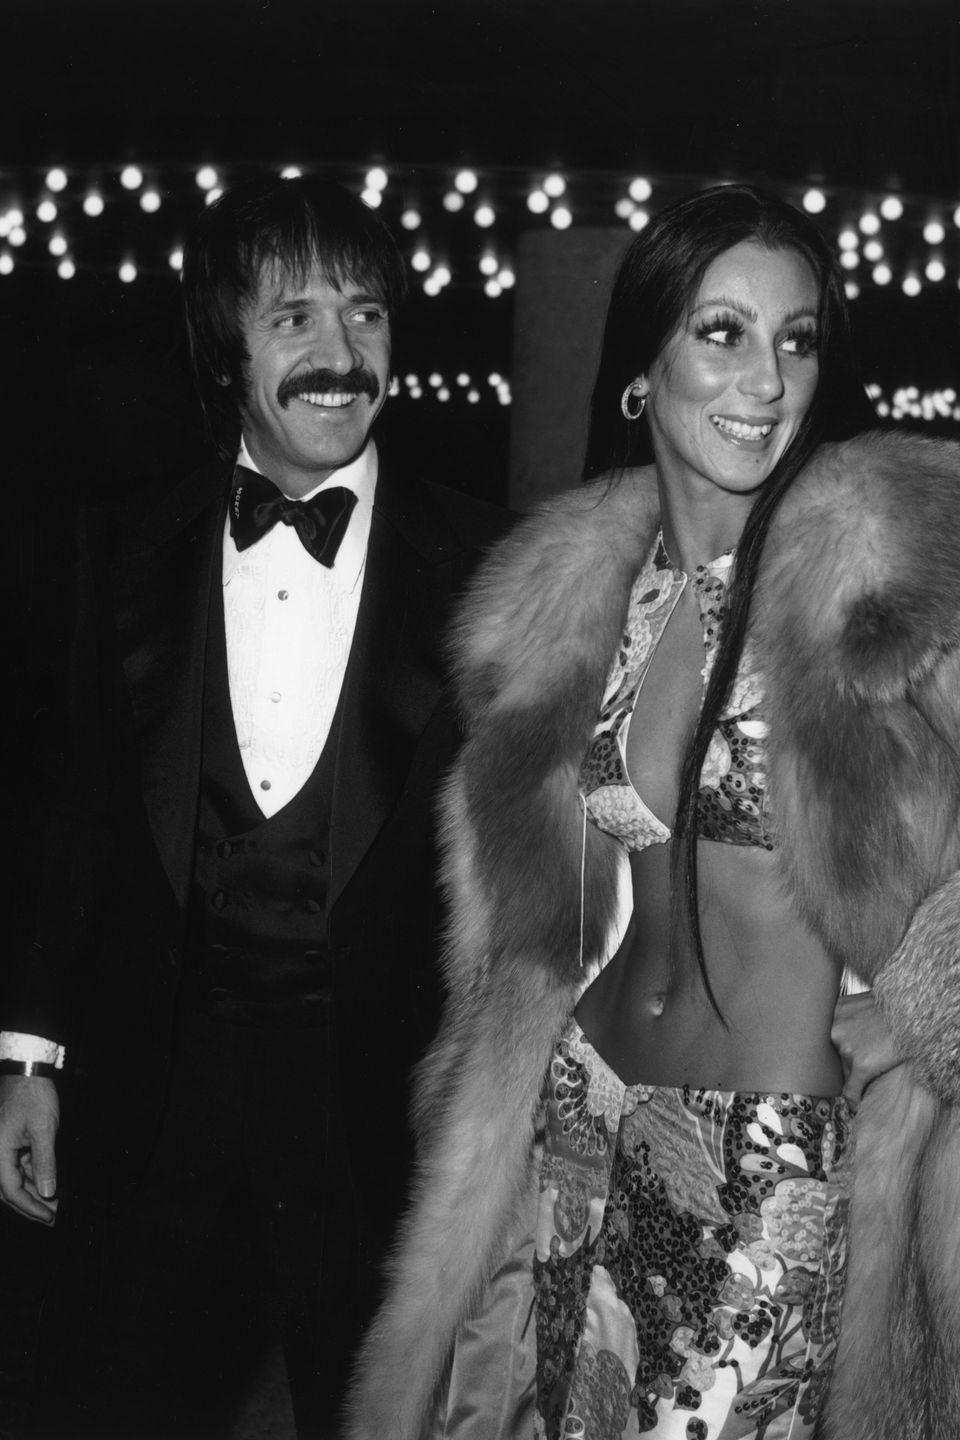 <p>We can always count on this diva to give us an over-the-top look. In true '70s fashion, Cher donned this skin-baring two-piece. </p>